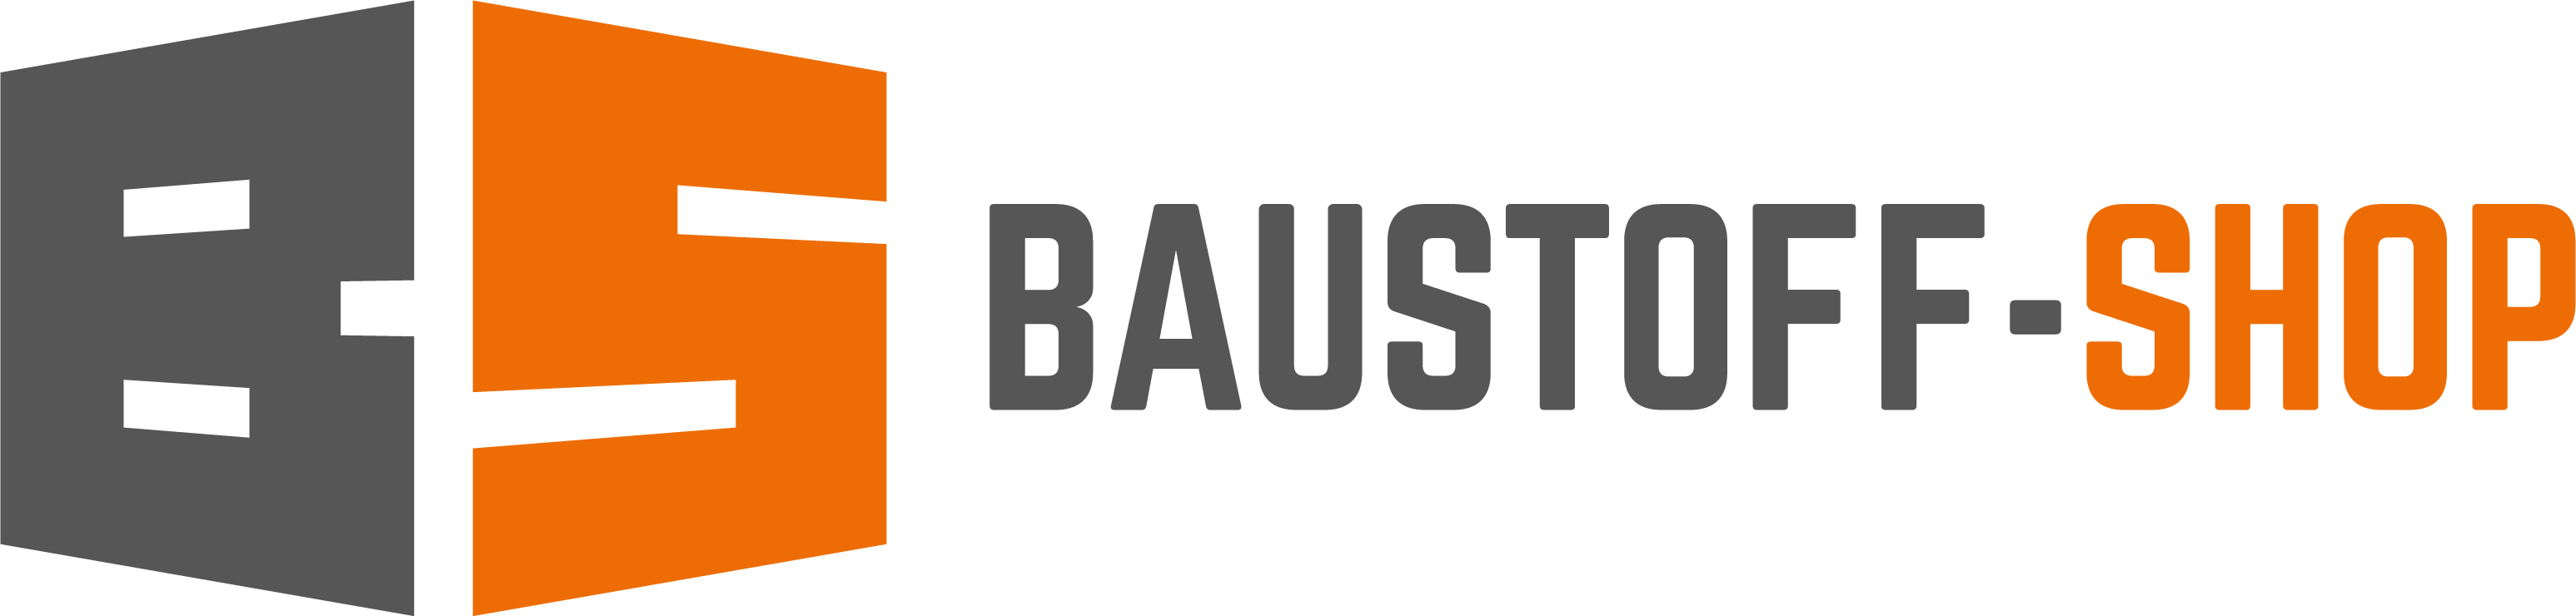 baustoff-shop.at